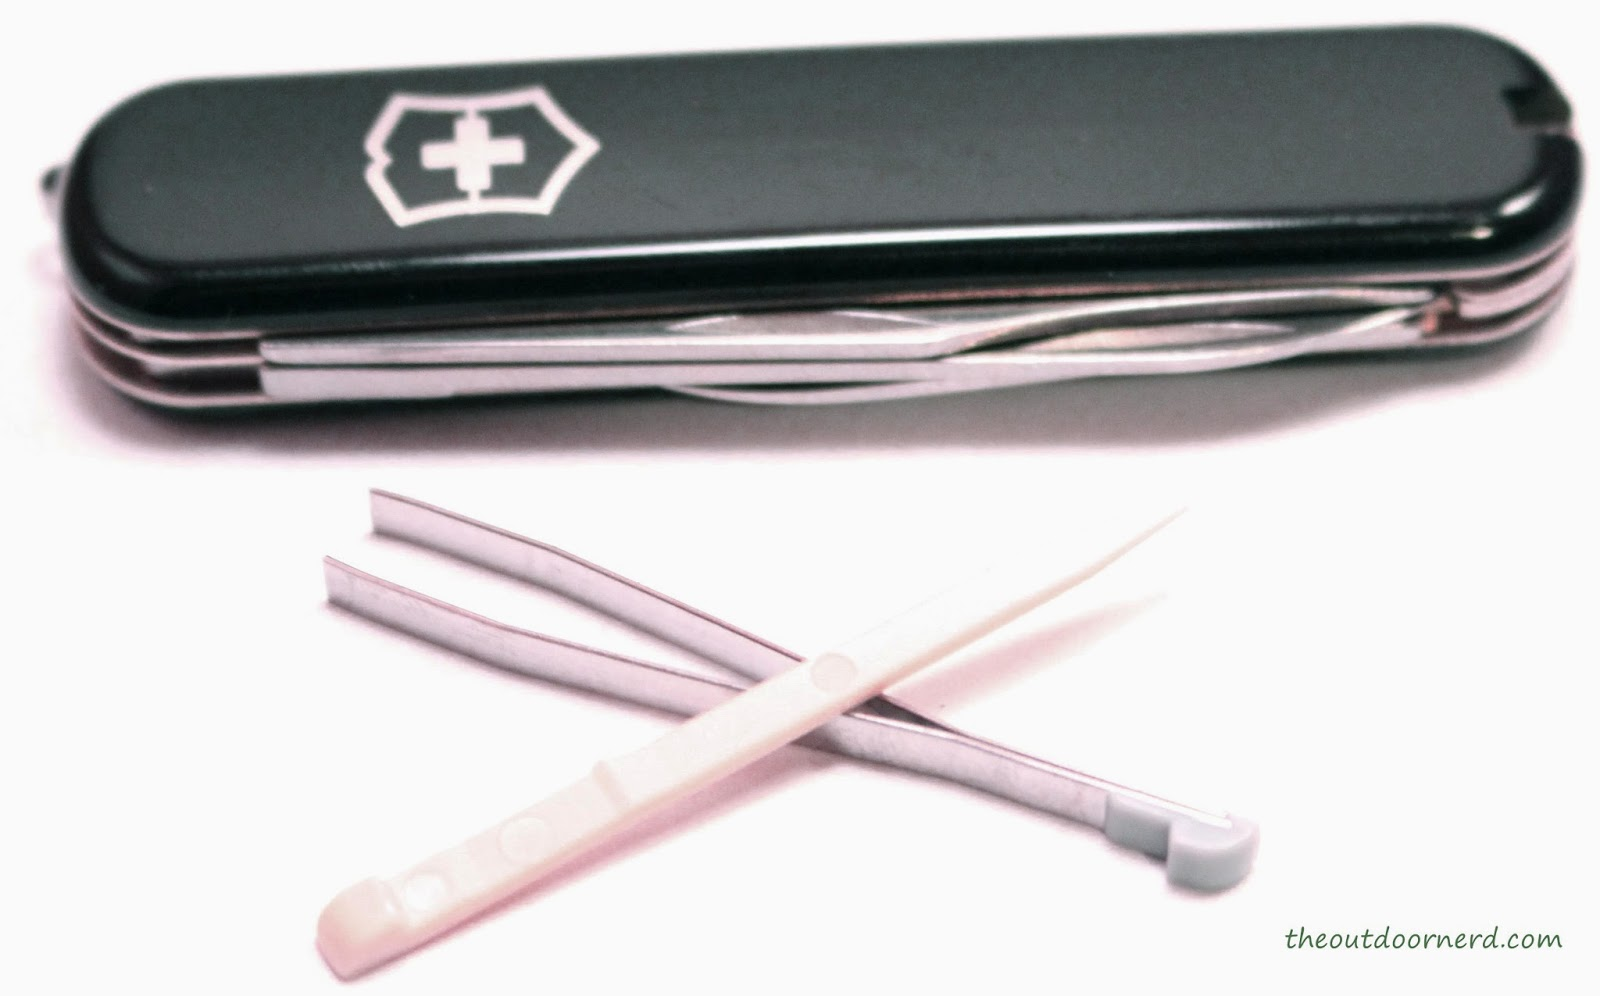 Victorinox Executive Multi-Tool Showing Tweezers and Toothpick